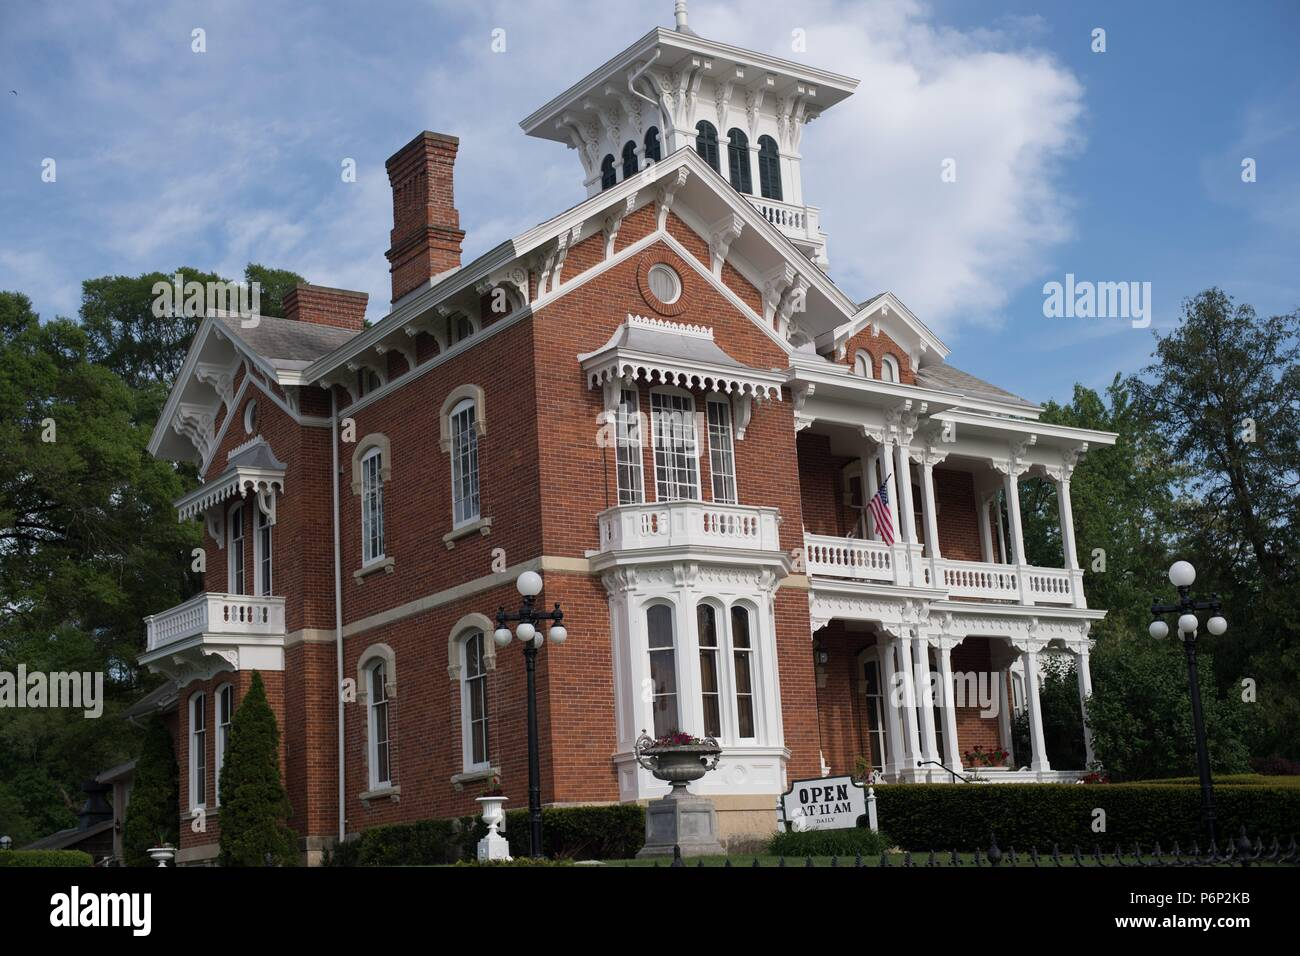 Galena, Illinois, USA. The Belevedere Mansion and Gardens in Galena, Illinois. The Belvedere was built in 1857 and is open to the public for tours. - Stock Image